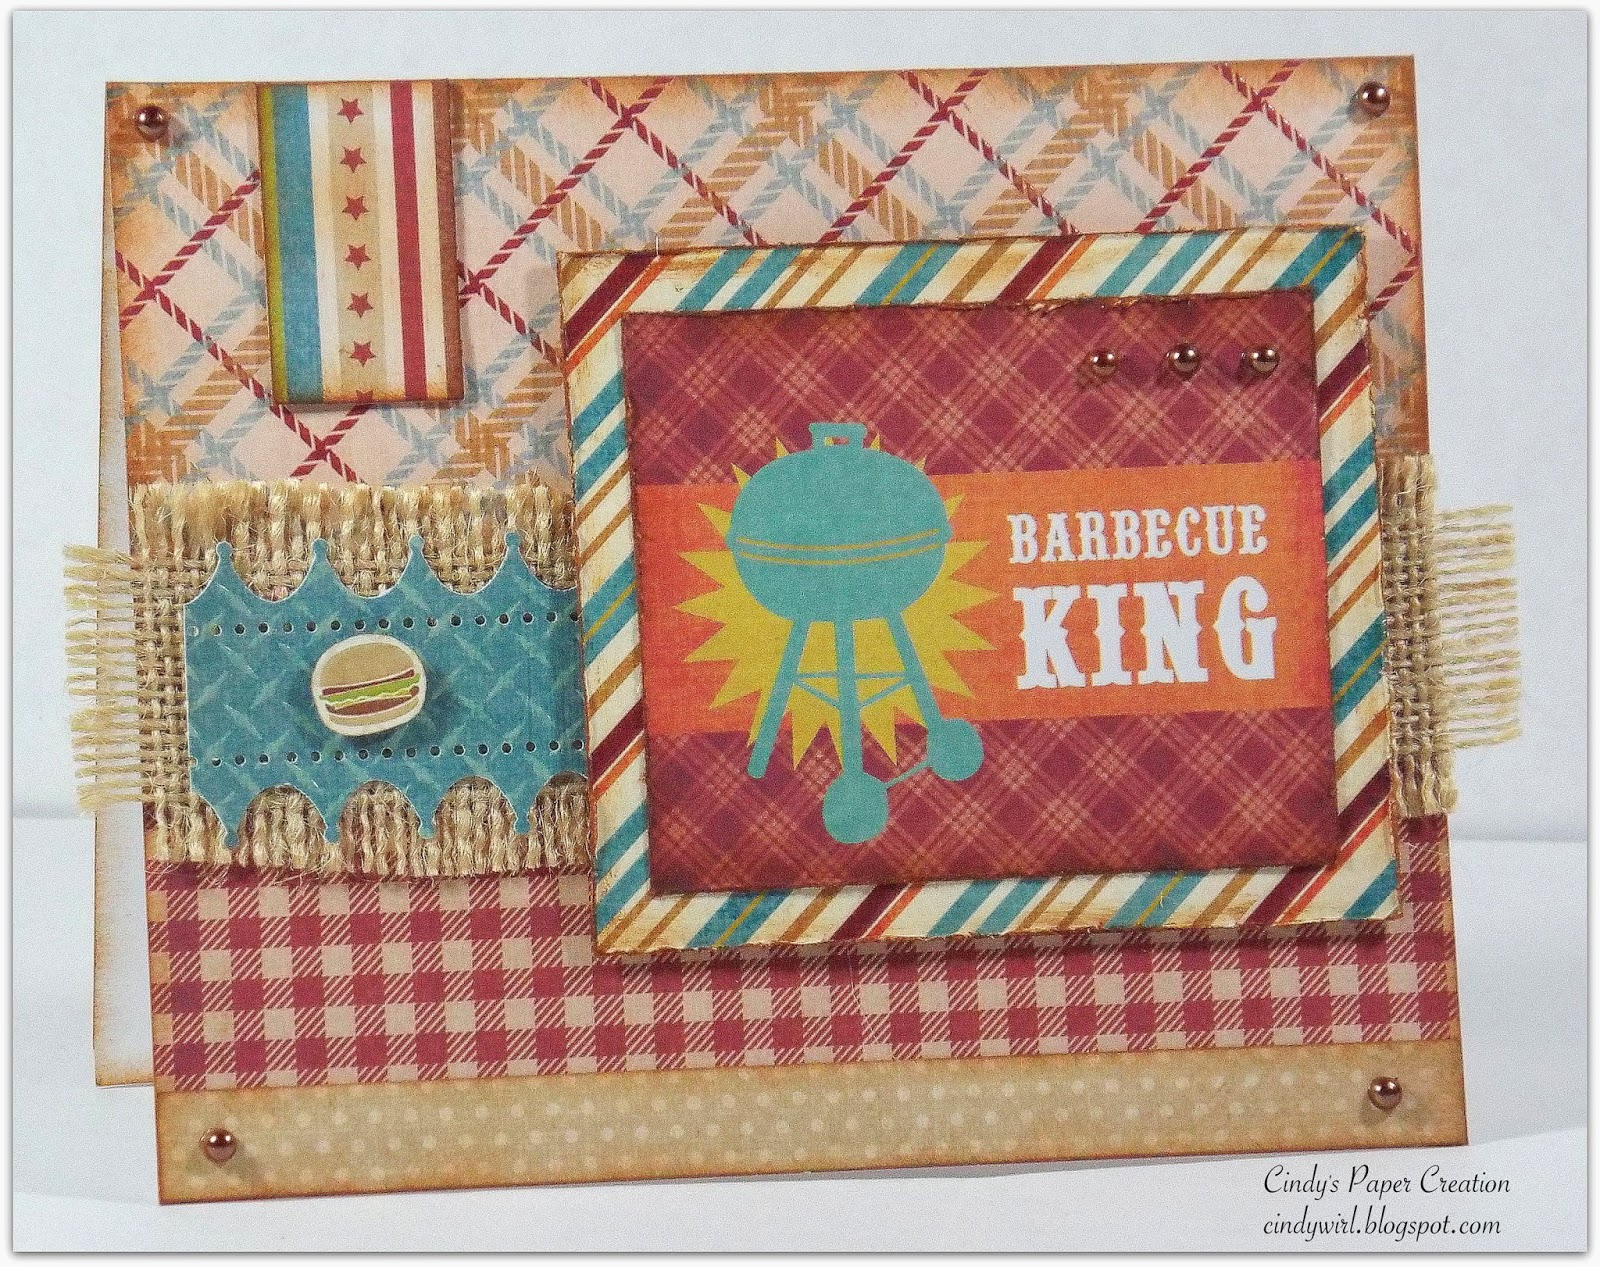 Handmade birthday card by Cindy's Paper Creation, Barbeque King